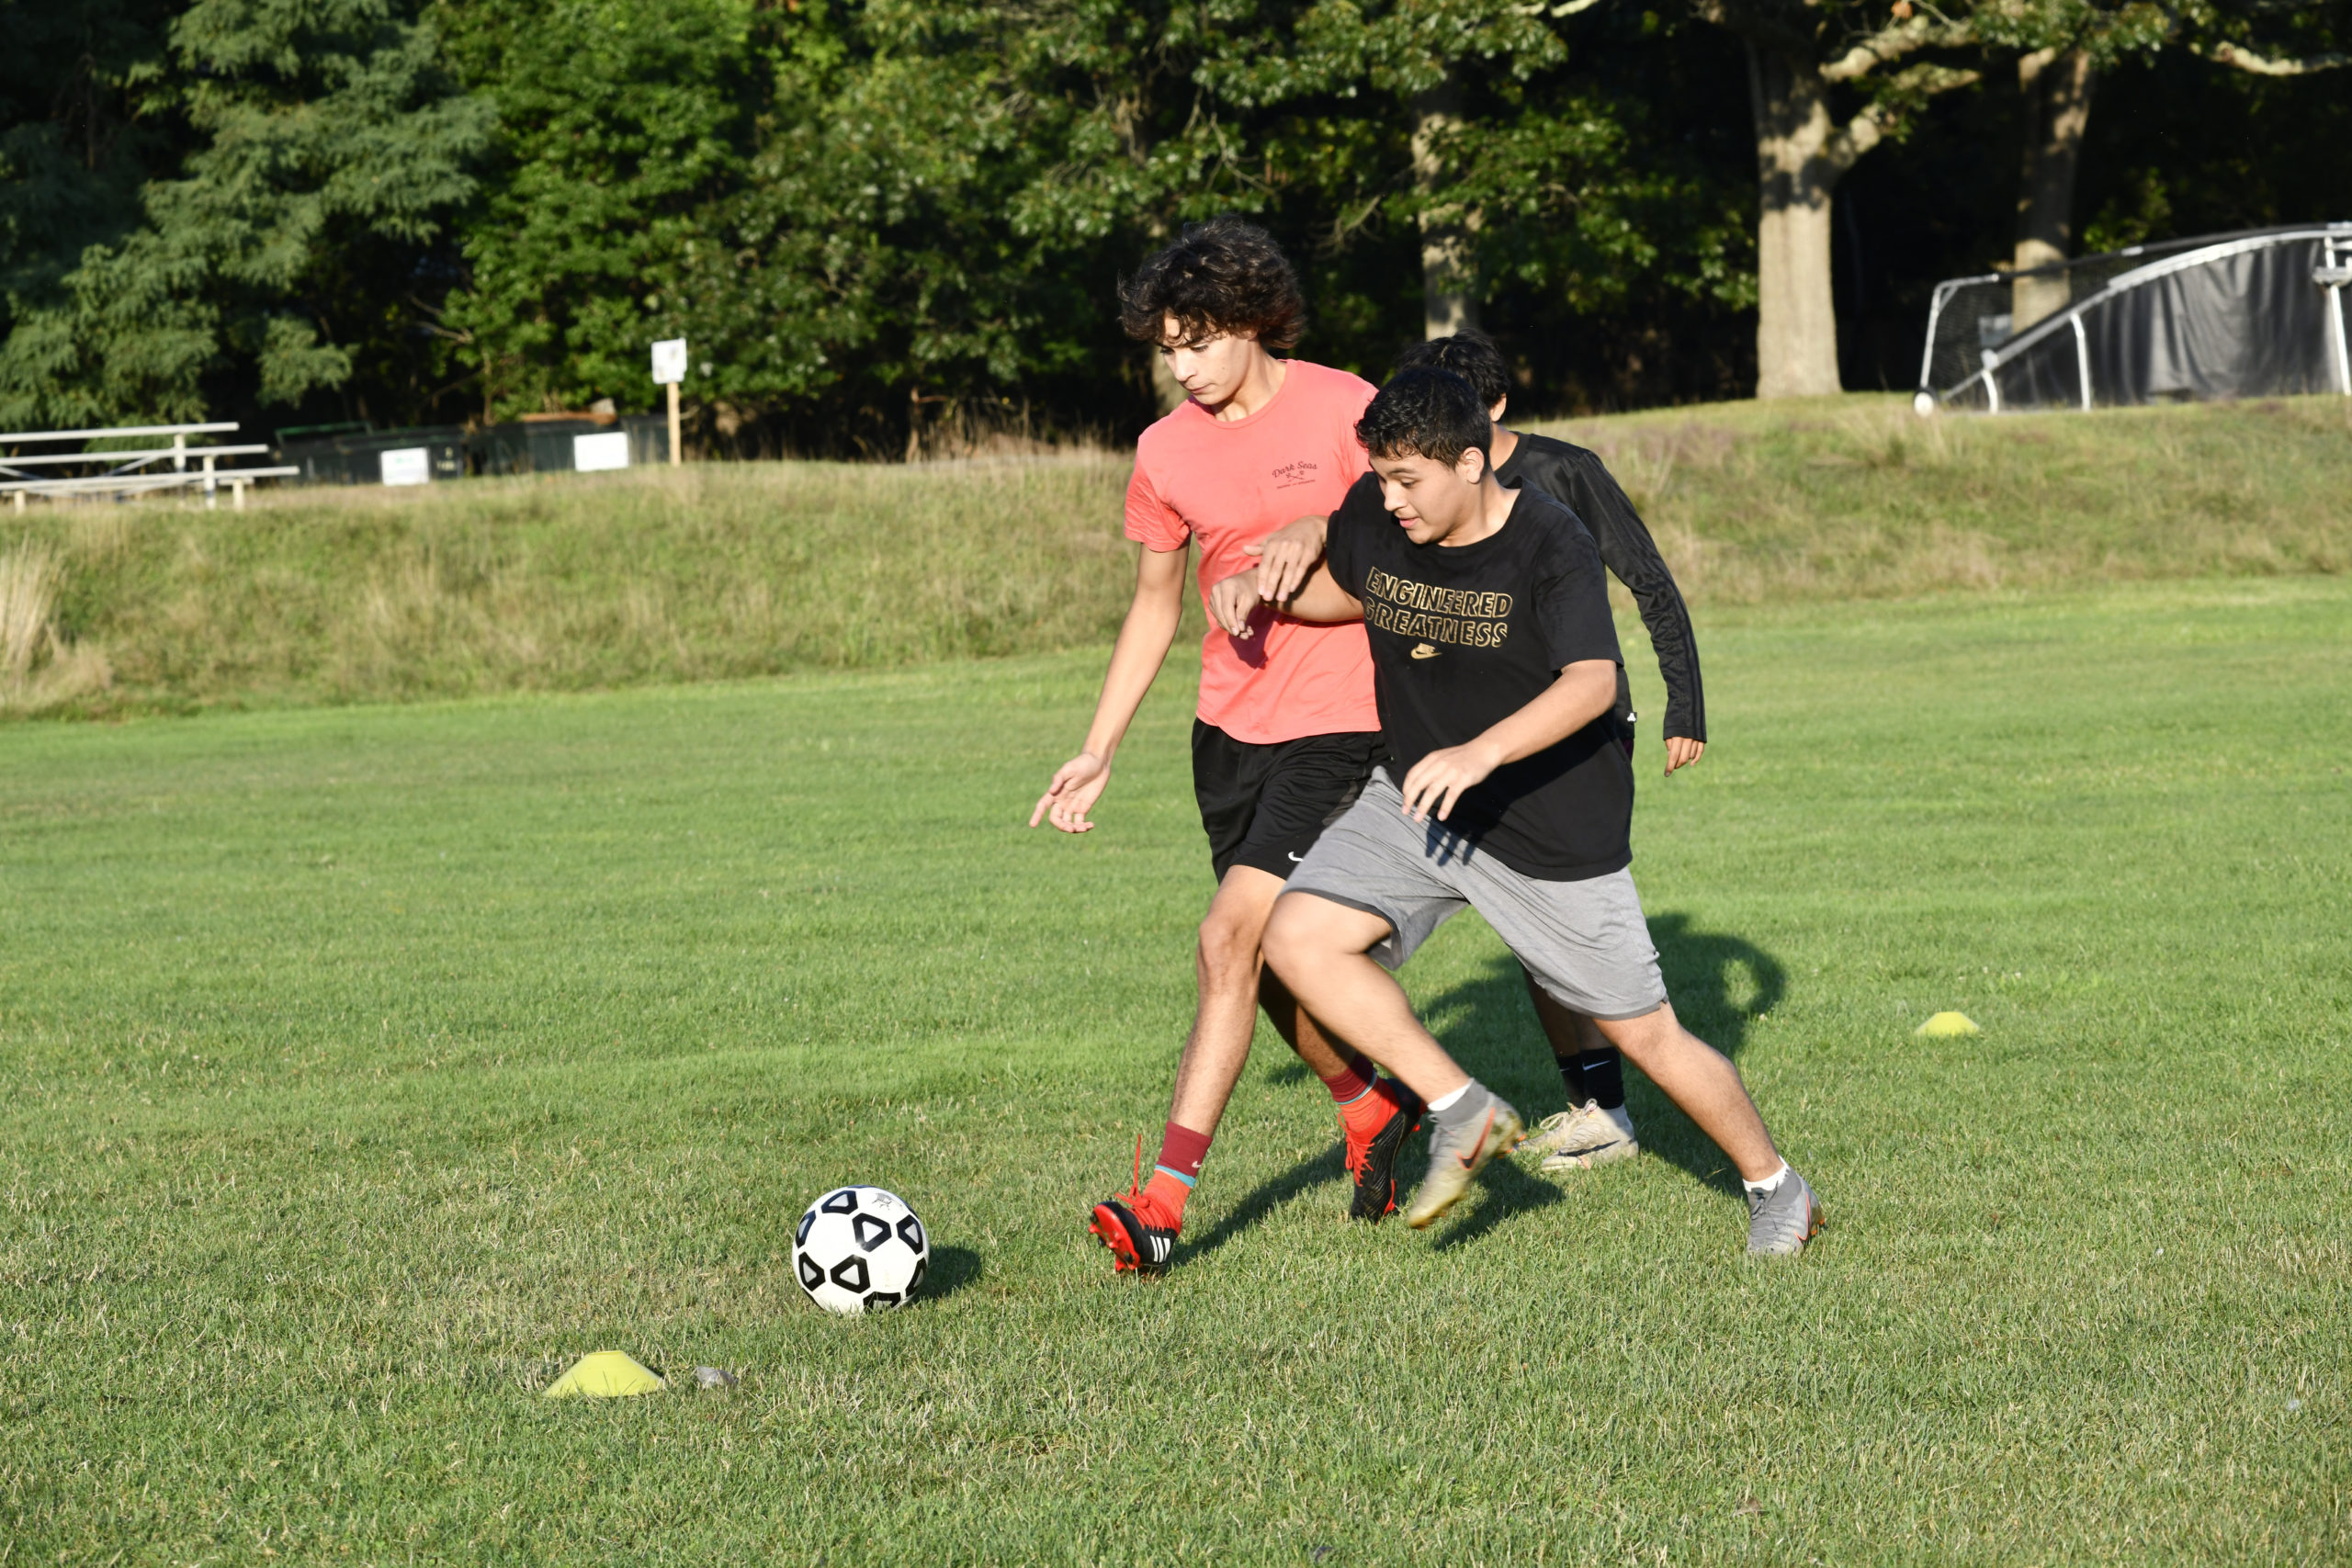 Players practice at Mashashimuet Park in Sag Harbor on Wednesday, August 19.  DANA SHAW